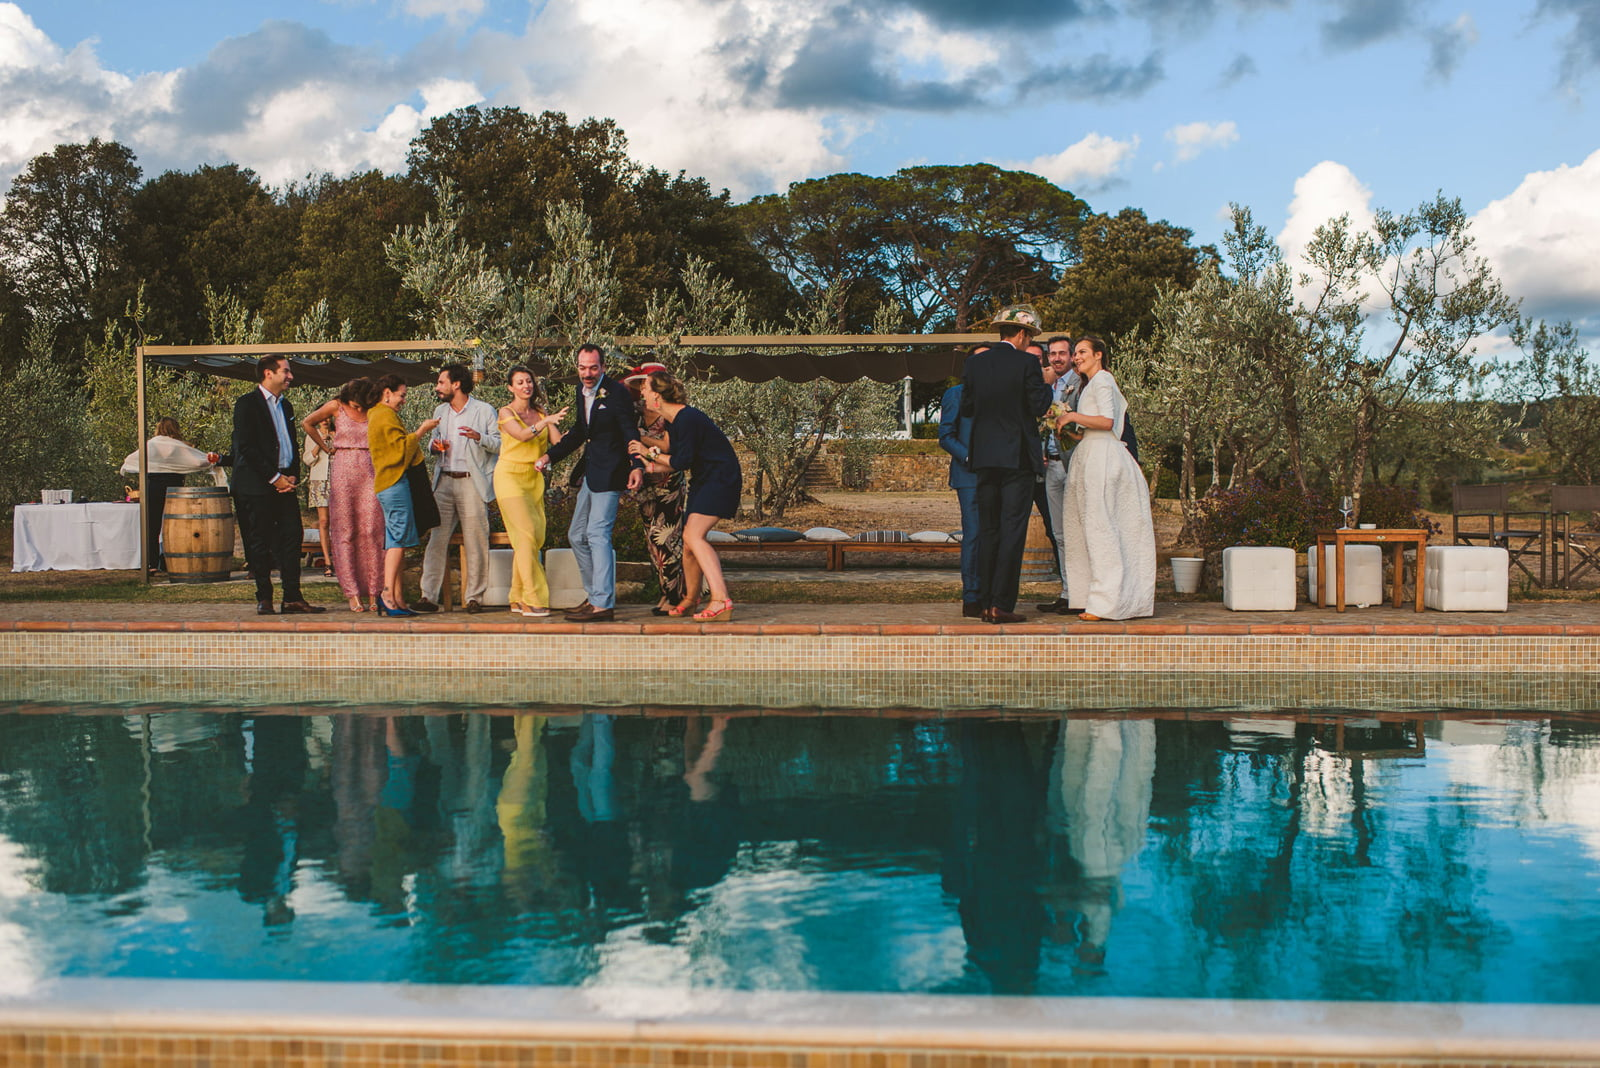 Lovely Wedding in Villa at Rignana by Federico Pannacci Wedding Photographer 79